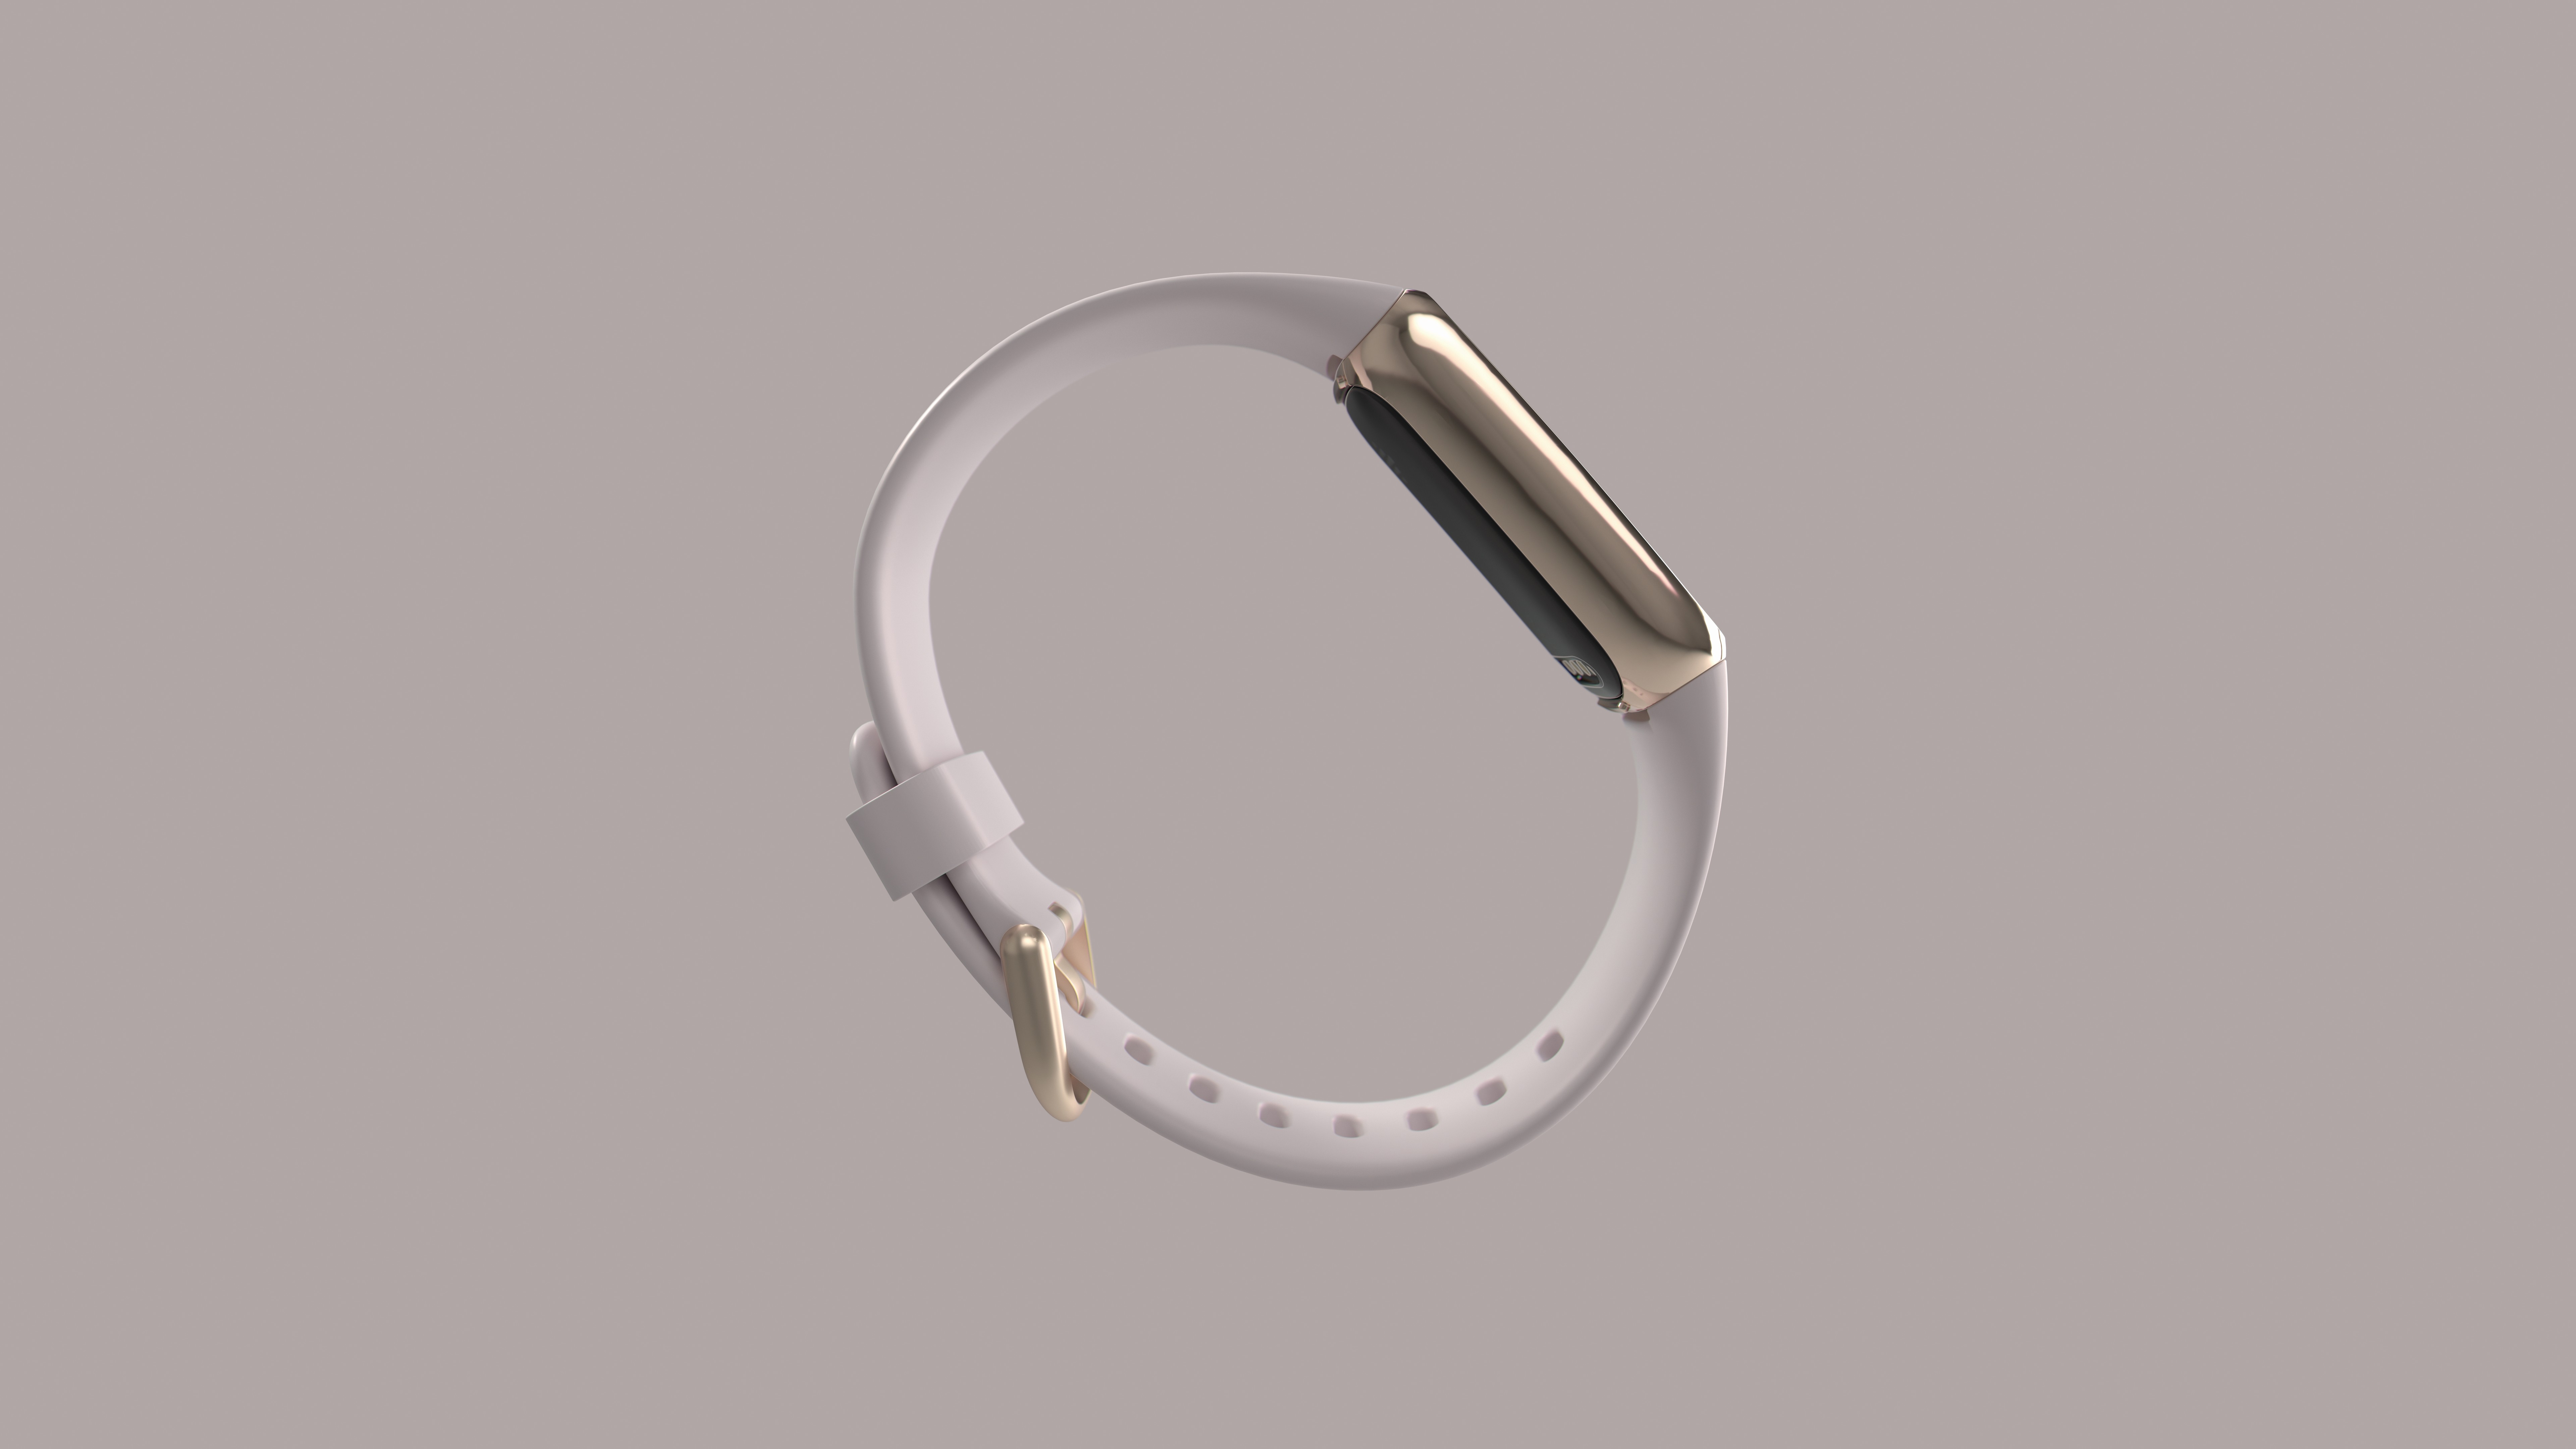 <p>Product laydown photo of Fitbit Luxe.</p>